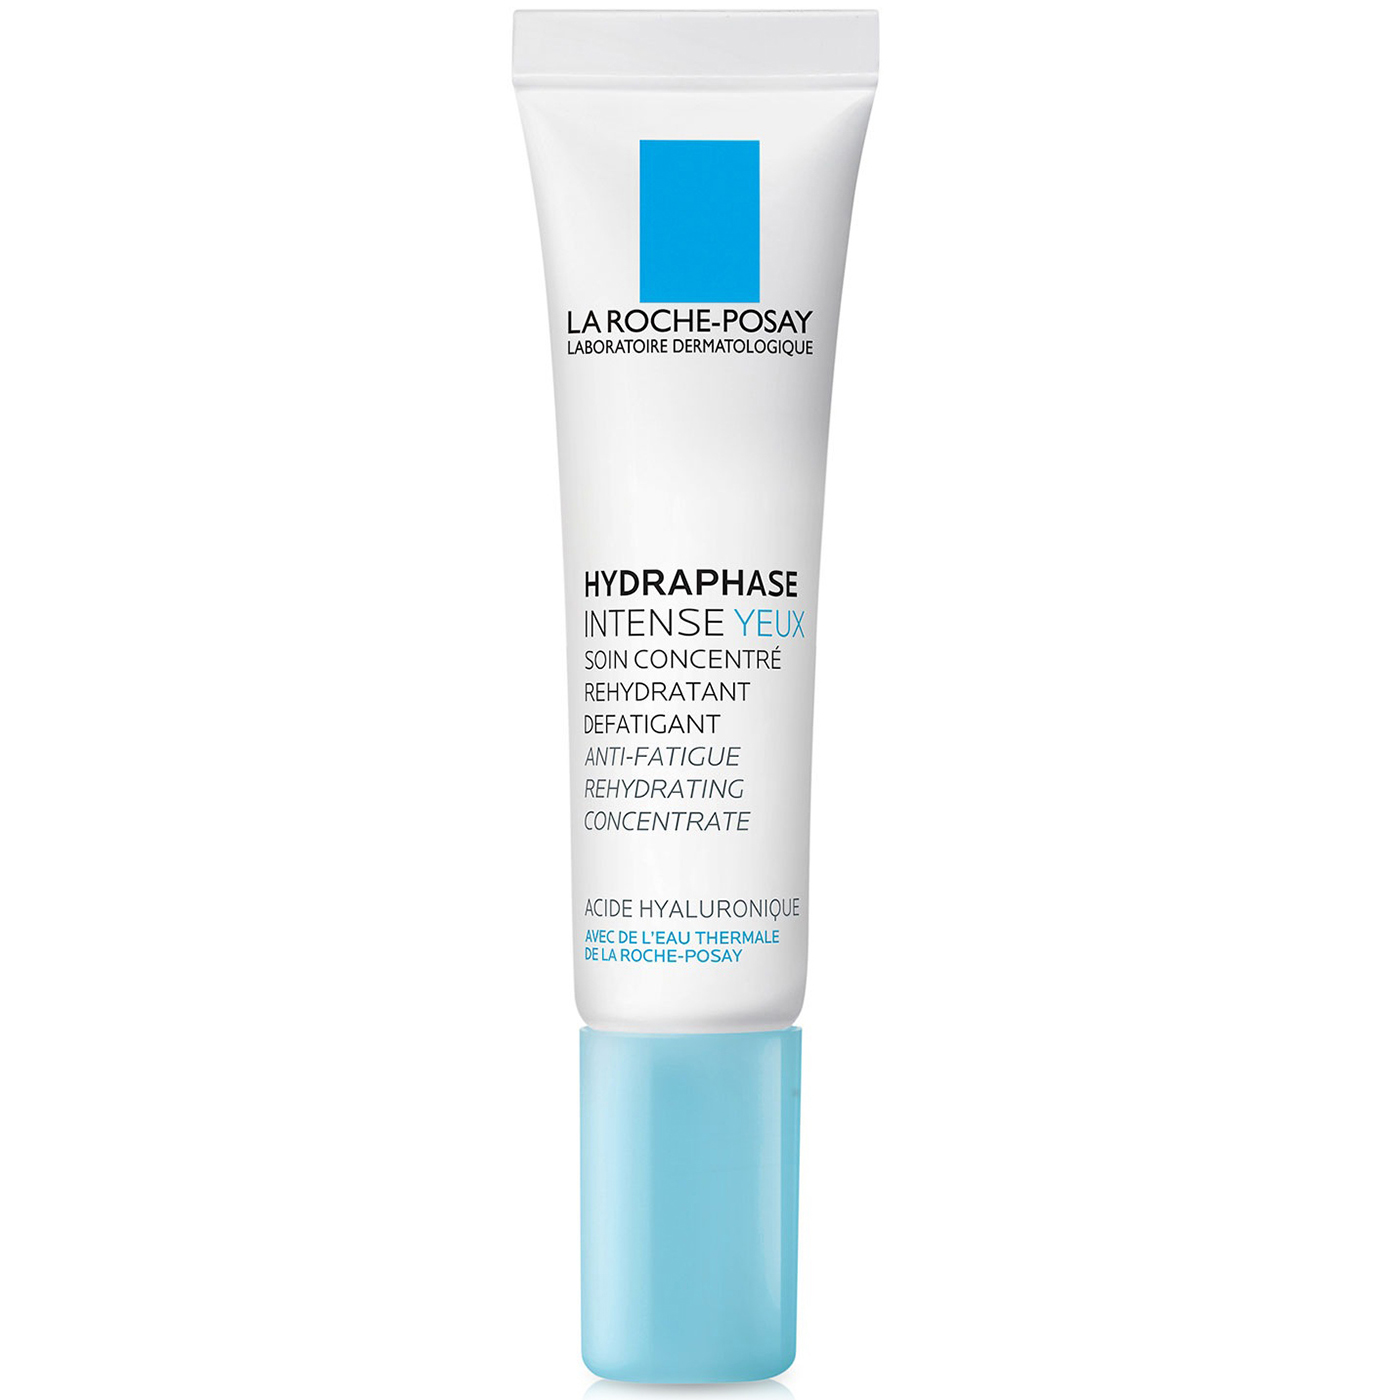 La Roche-Posay Hydraphase Intense Eye Cream with Hyaluronic Acid